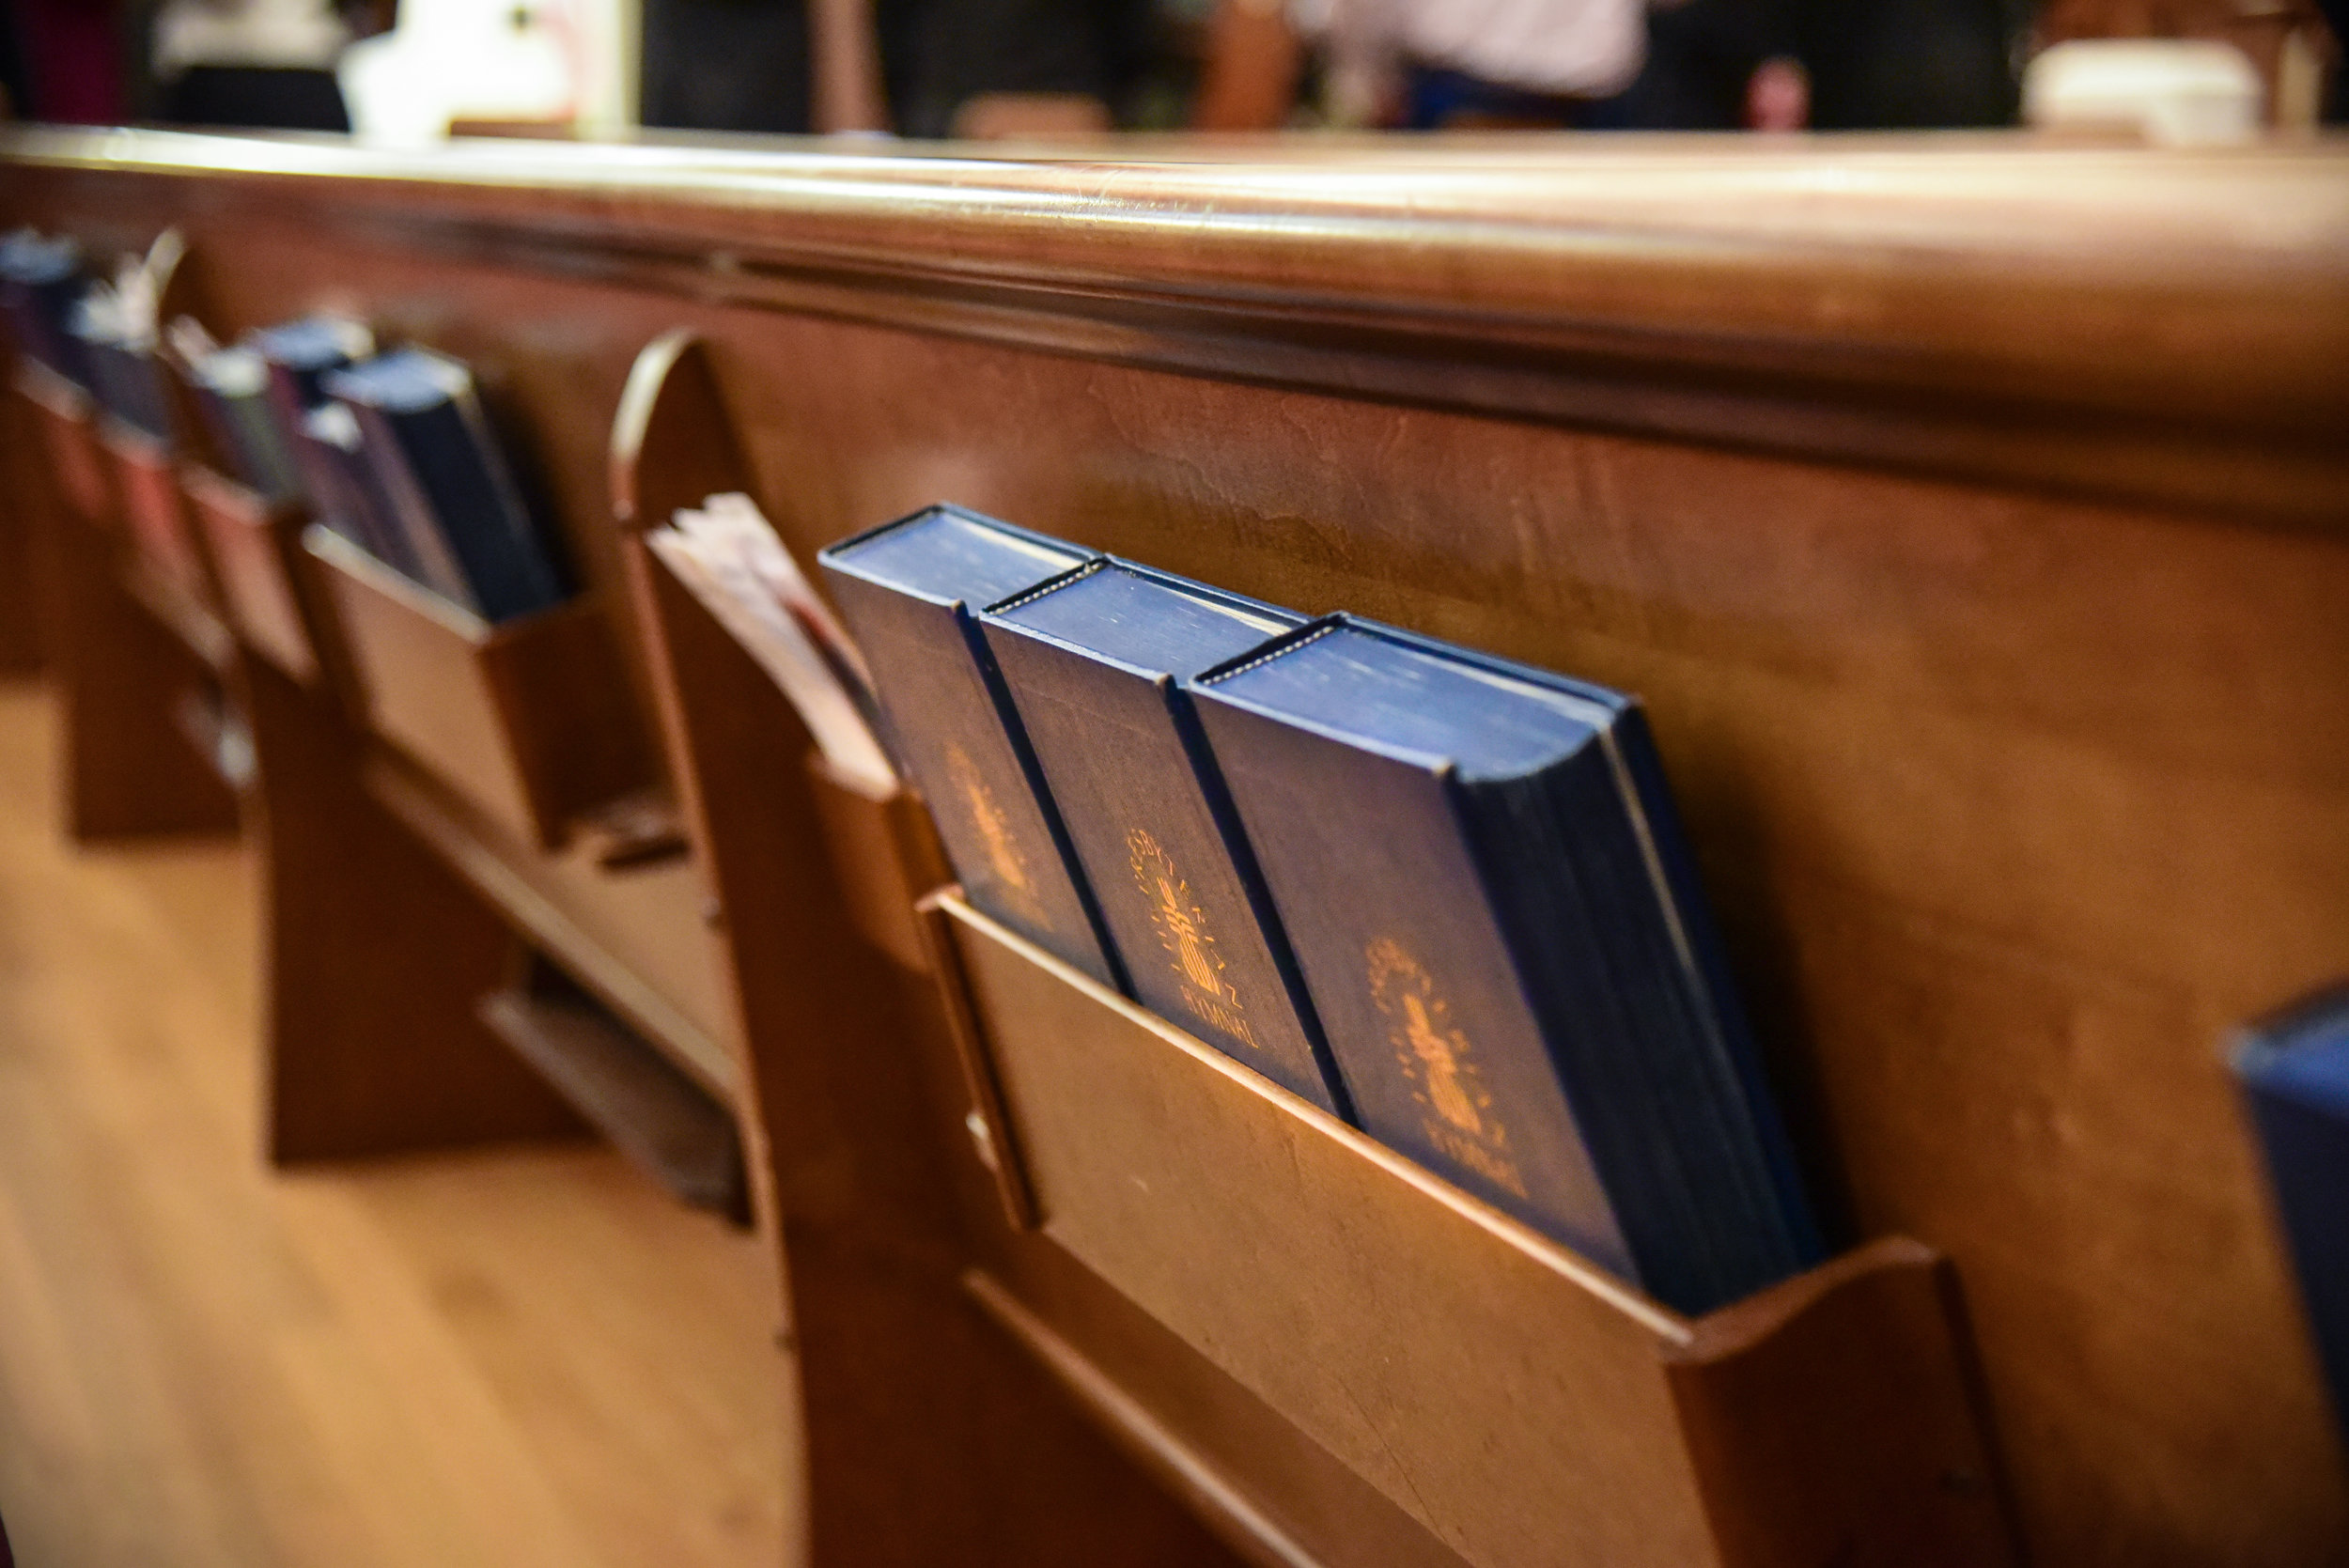 Music - We have a traditional worship service with organ accompaniment for hymns sung from the Presbyterian Hymnal.  Our Chancel Choir sings an anthem each Sunday, and our handbell choir provides a prelude or offertory about once a month.